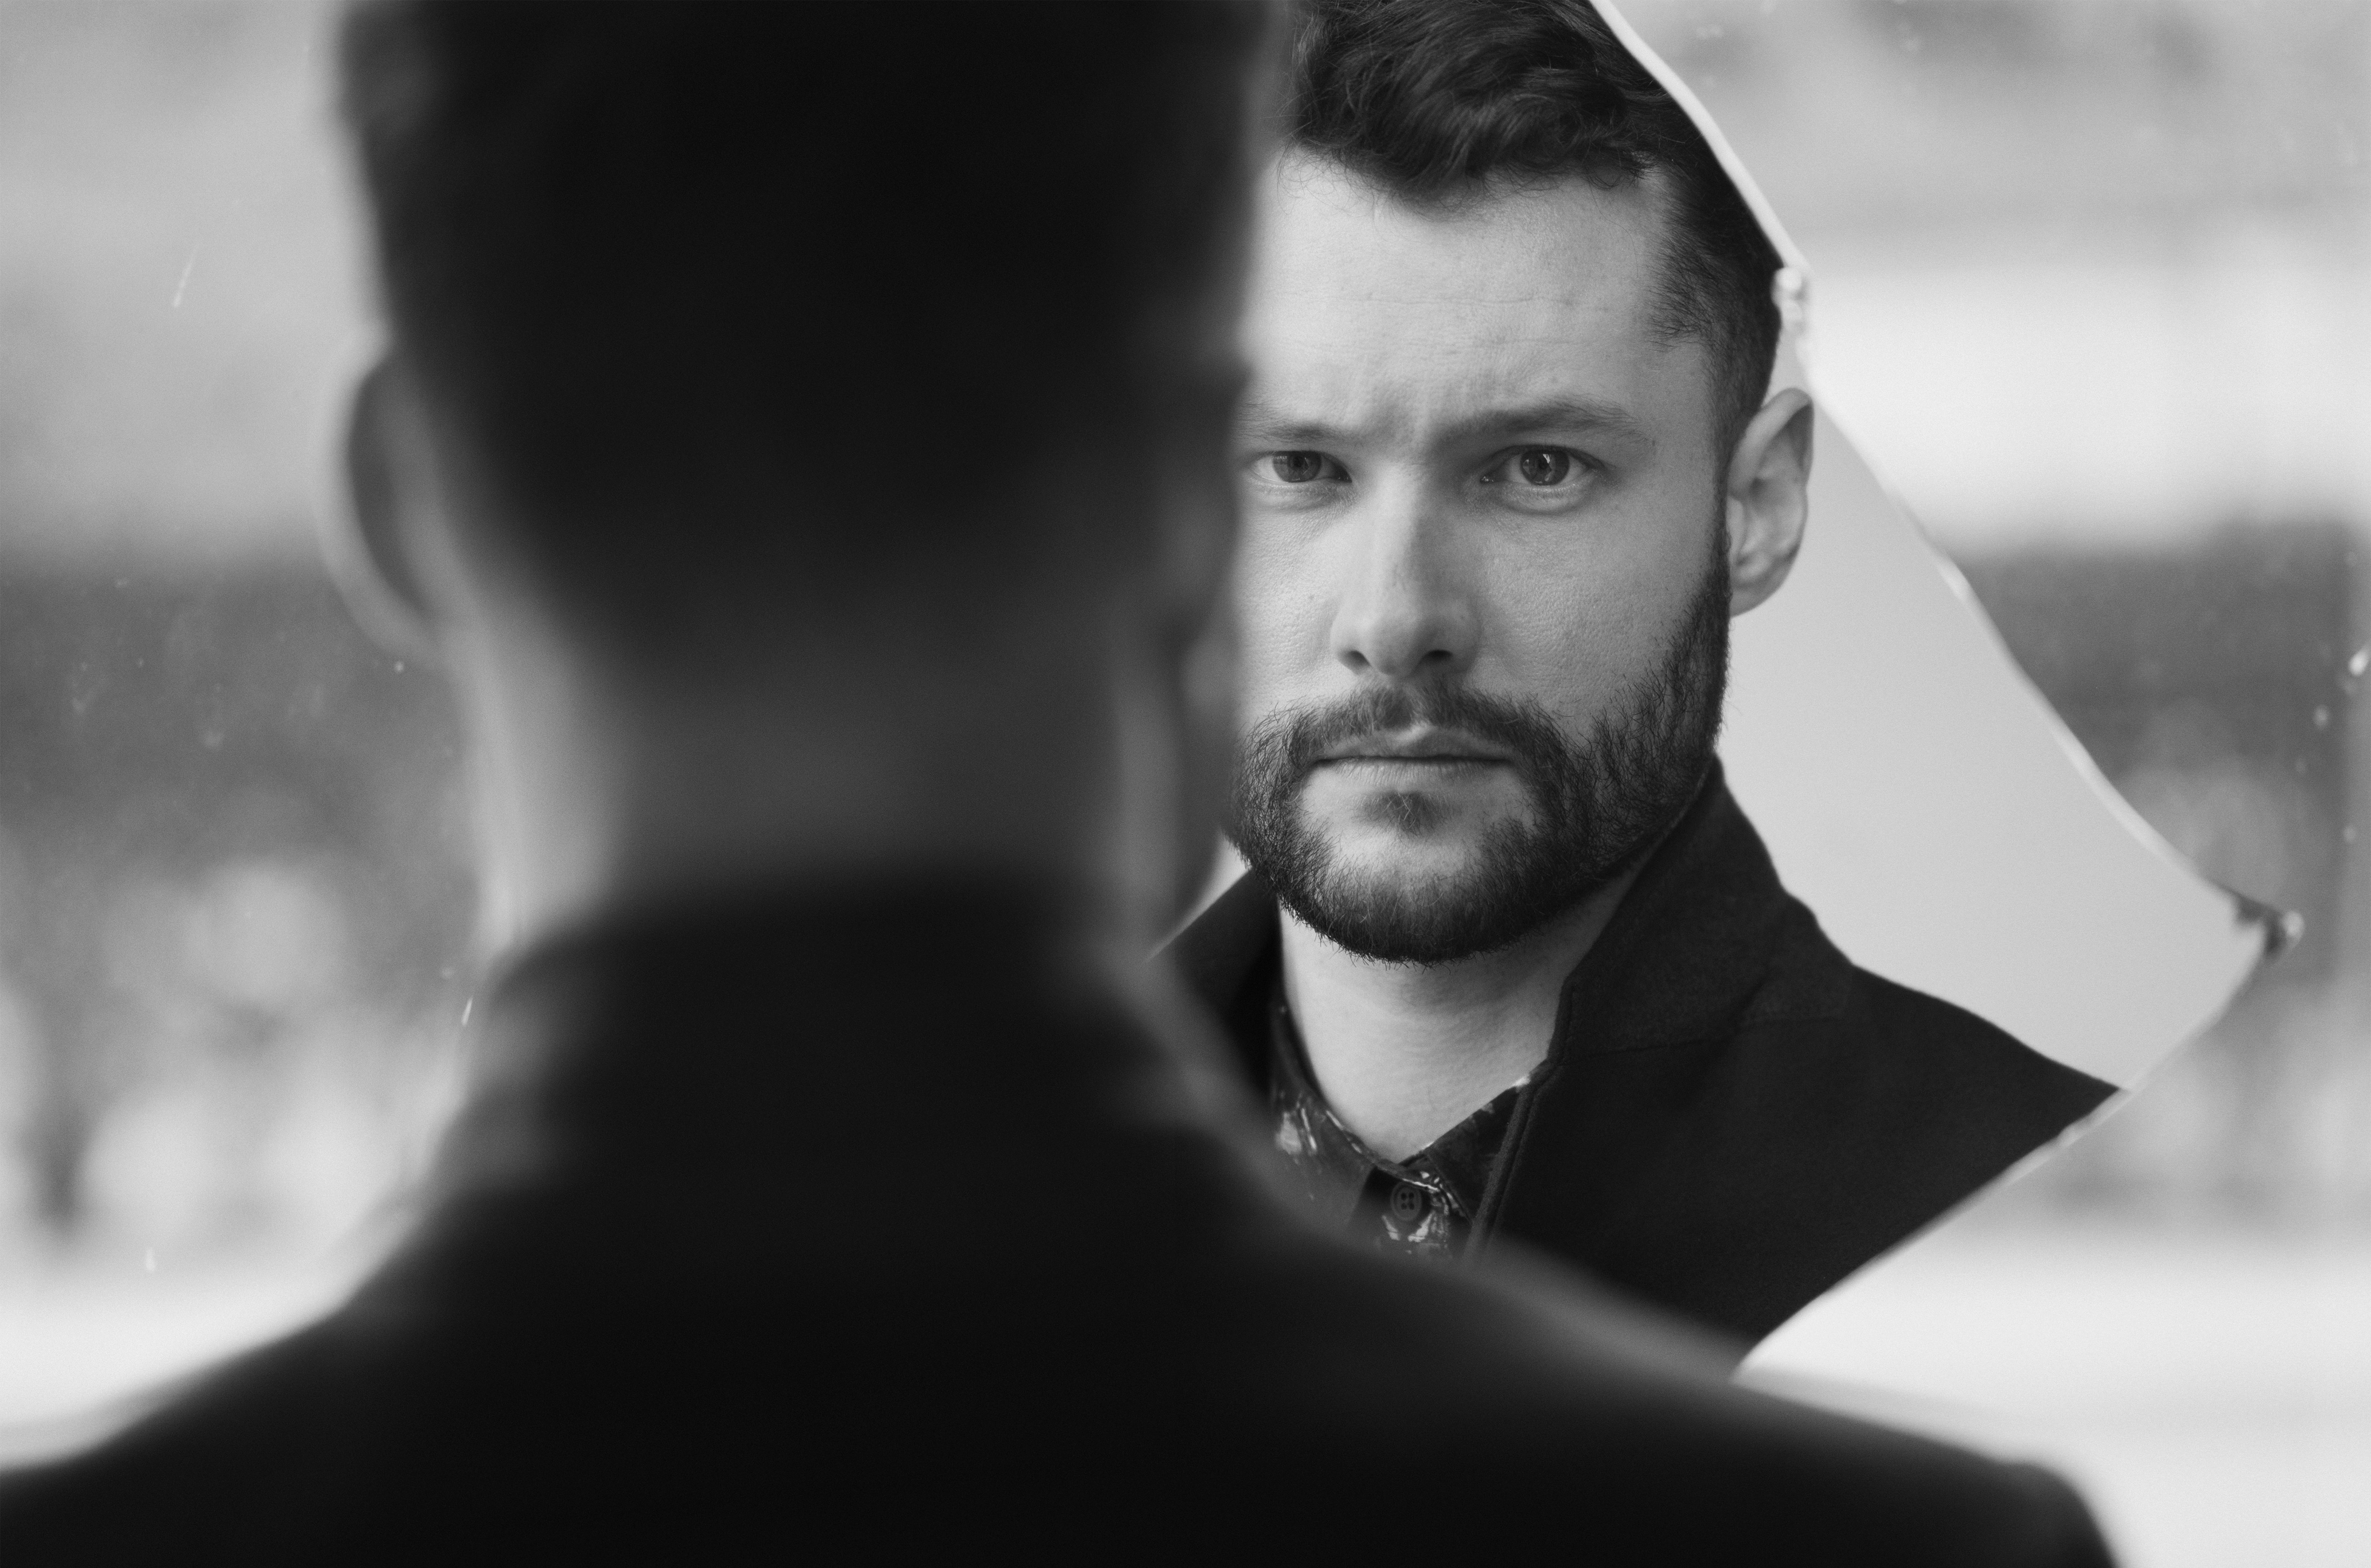 Britain S Got Talent S Breakout Star Calum Scott On Going Viral Touring With Pentatonix And Plans For His First Ever Visit To Hk Yp South China Morning Post